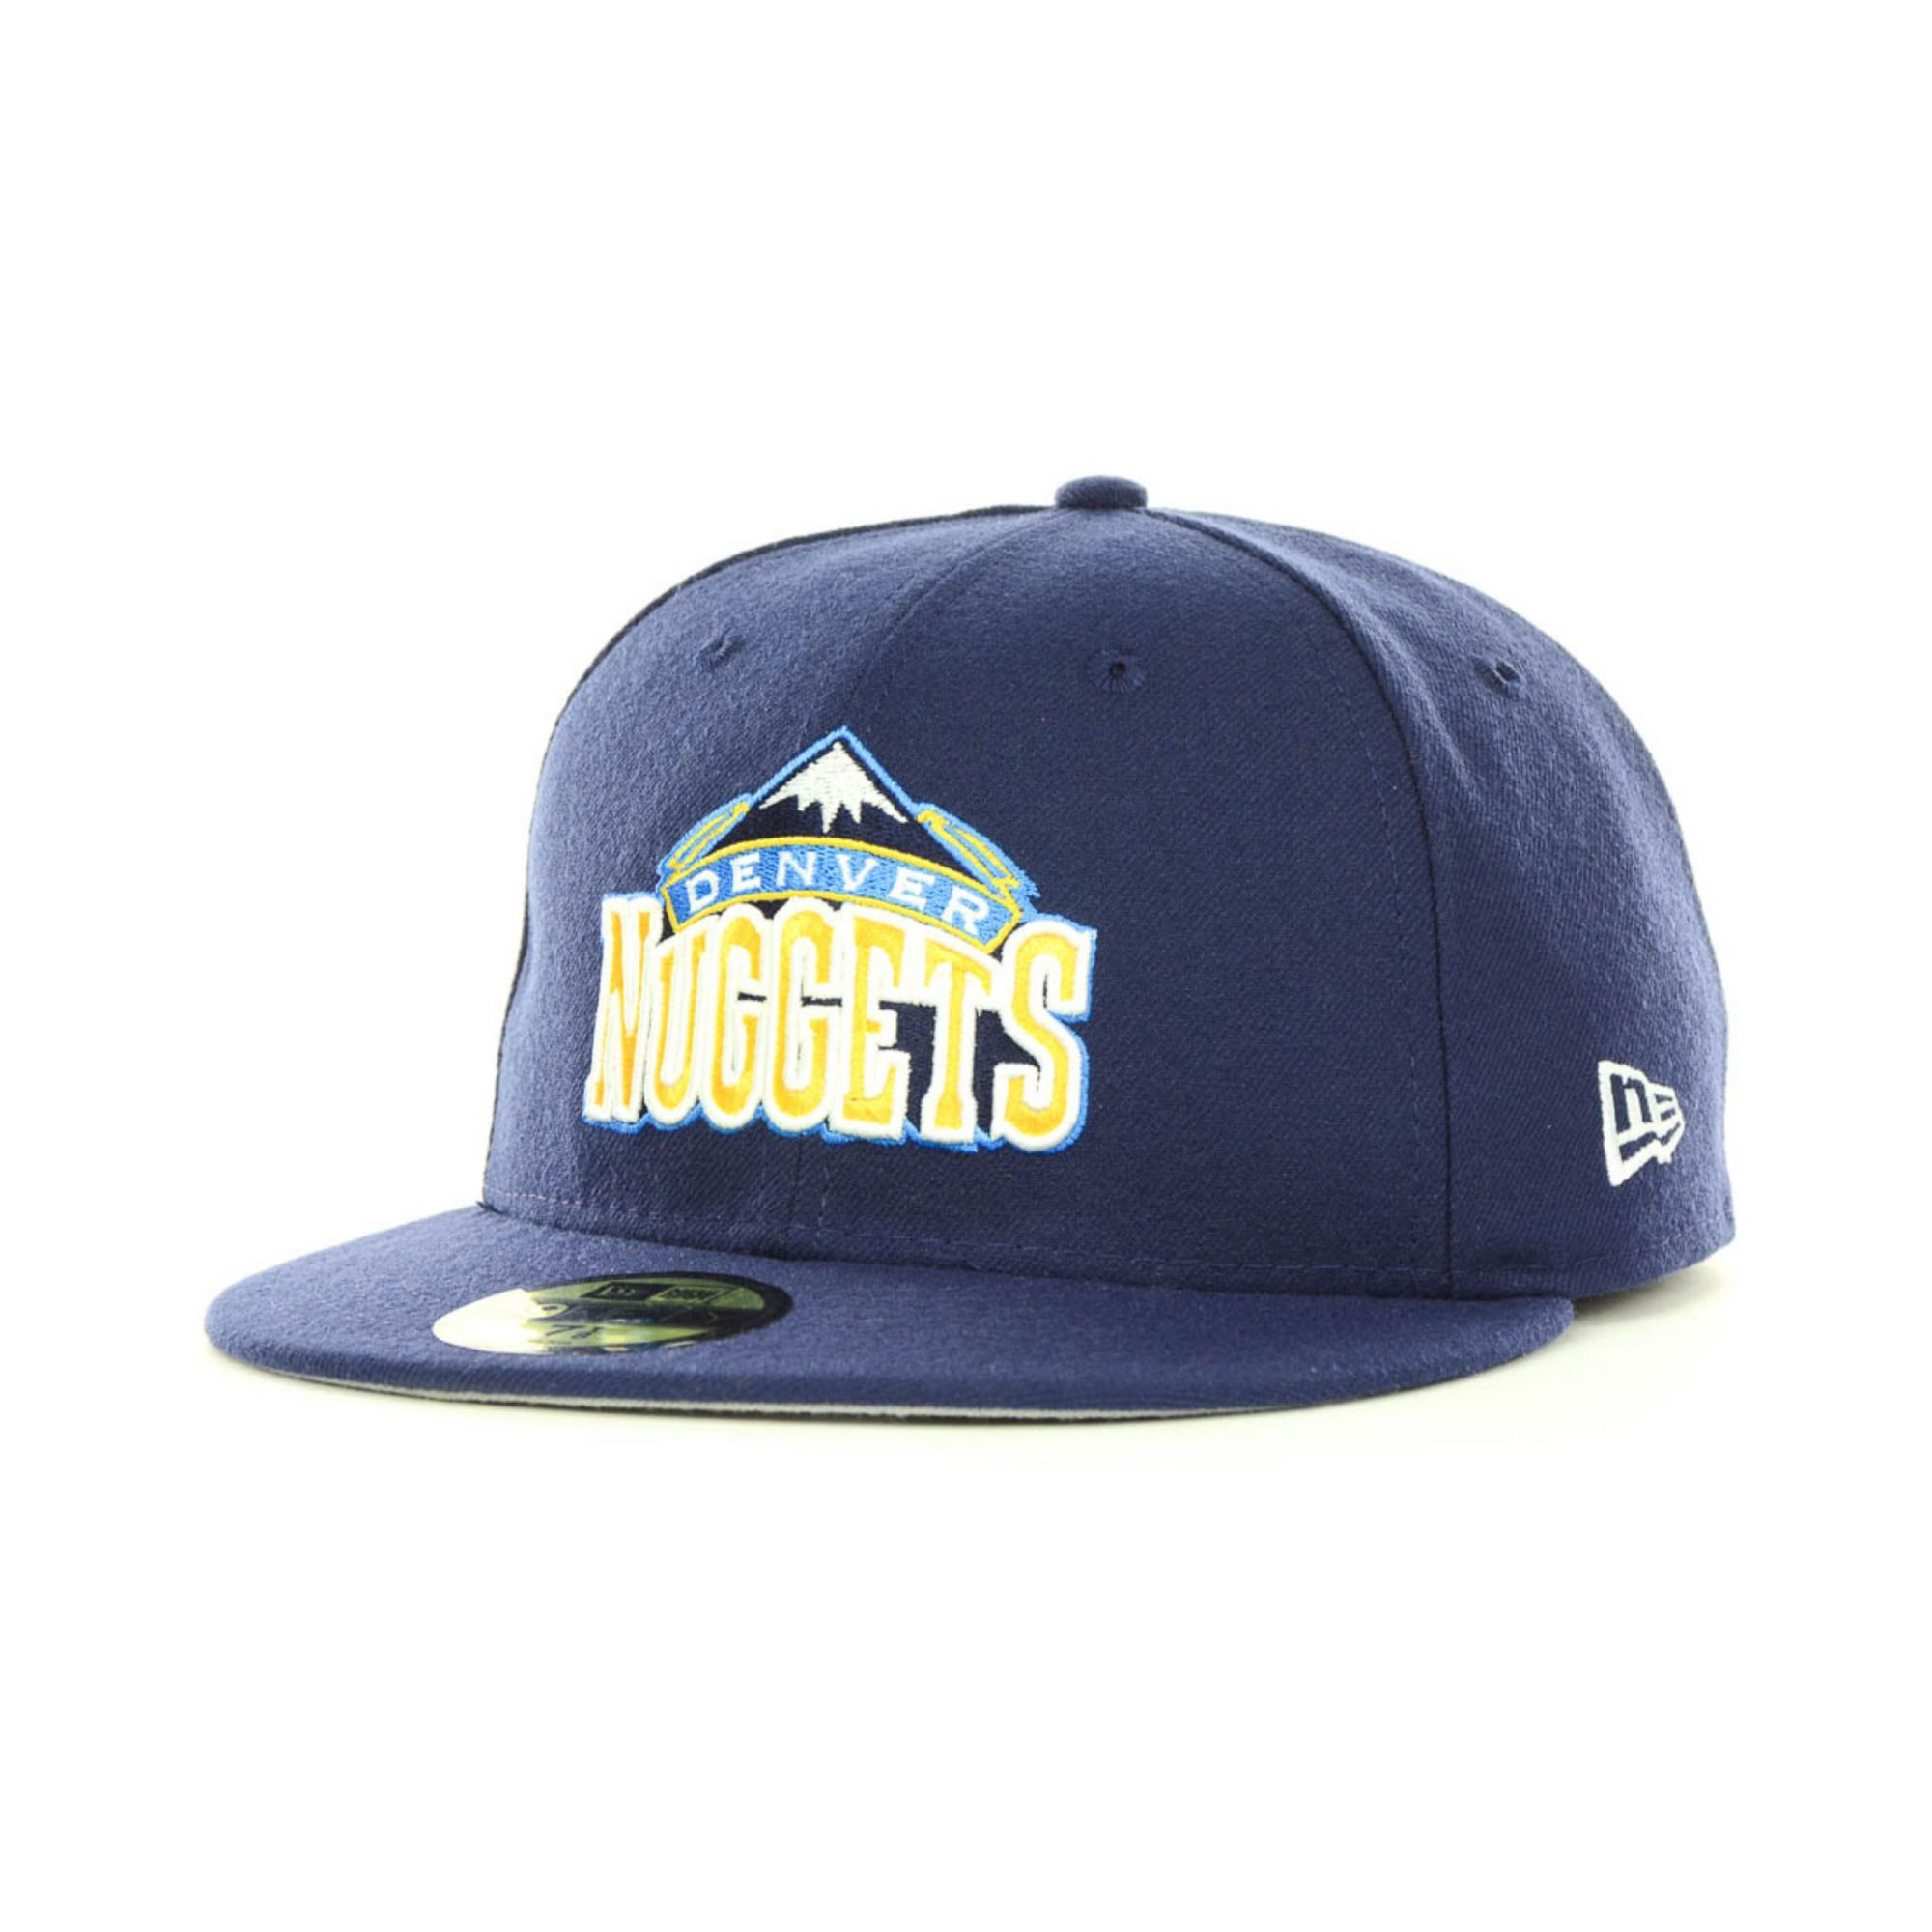 the latest c2c55 438fe low cost lyst ktz denver nuggets nba current logo 59fifty cap in blue for  men ab36c